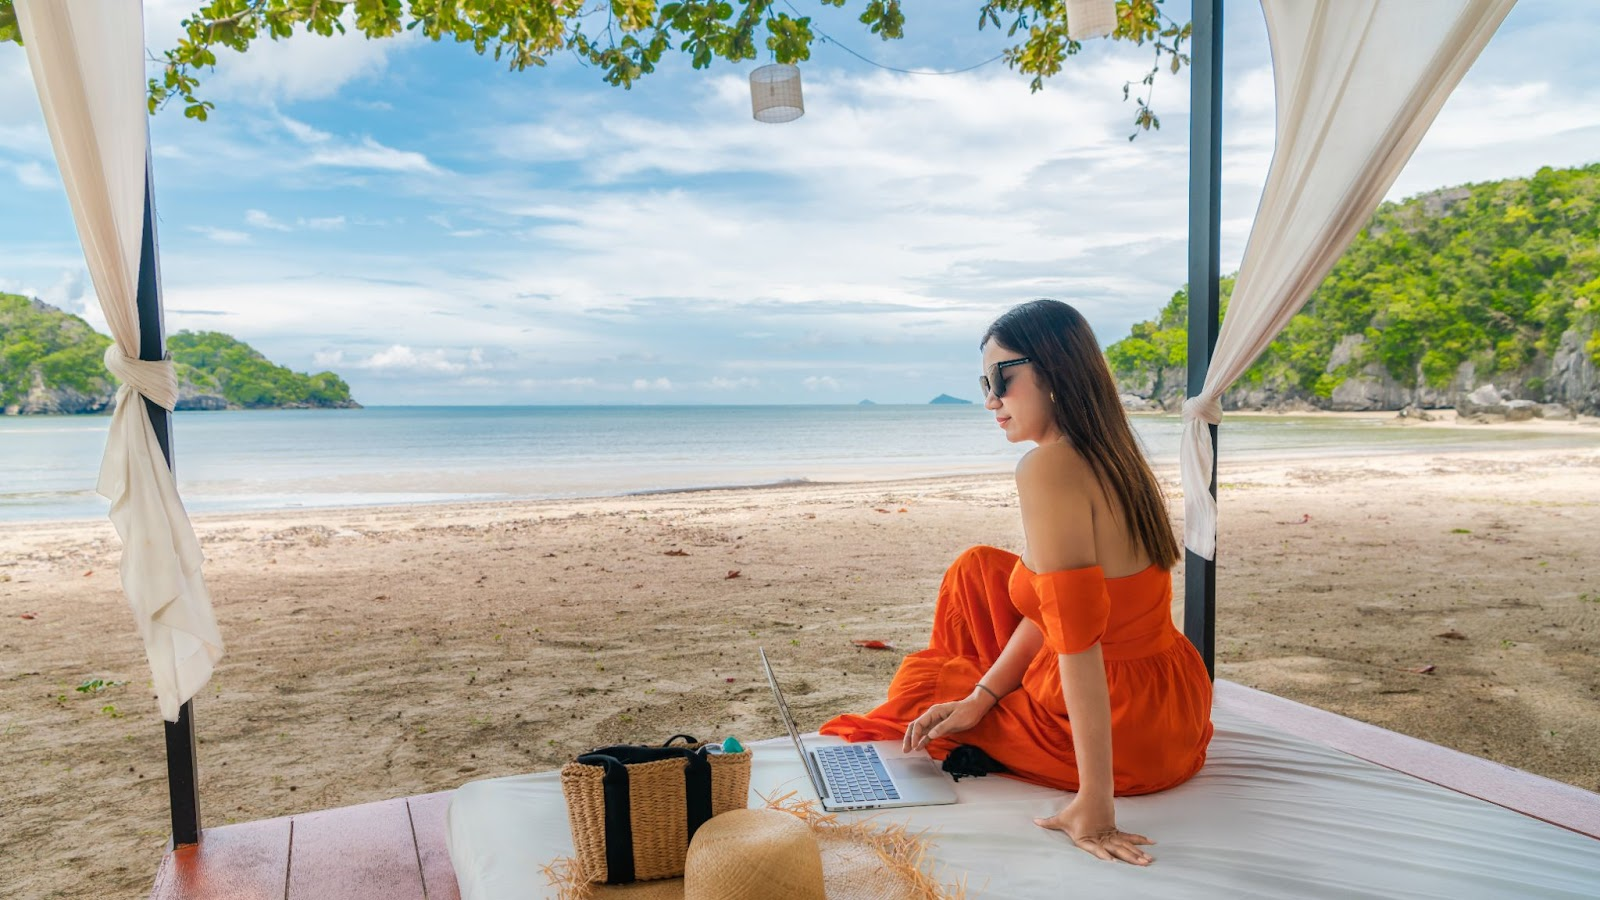 Living and working in Thailand has many mental health and wellness benefits